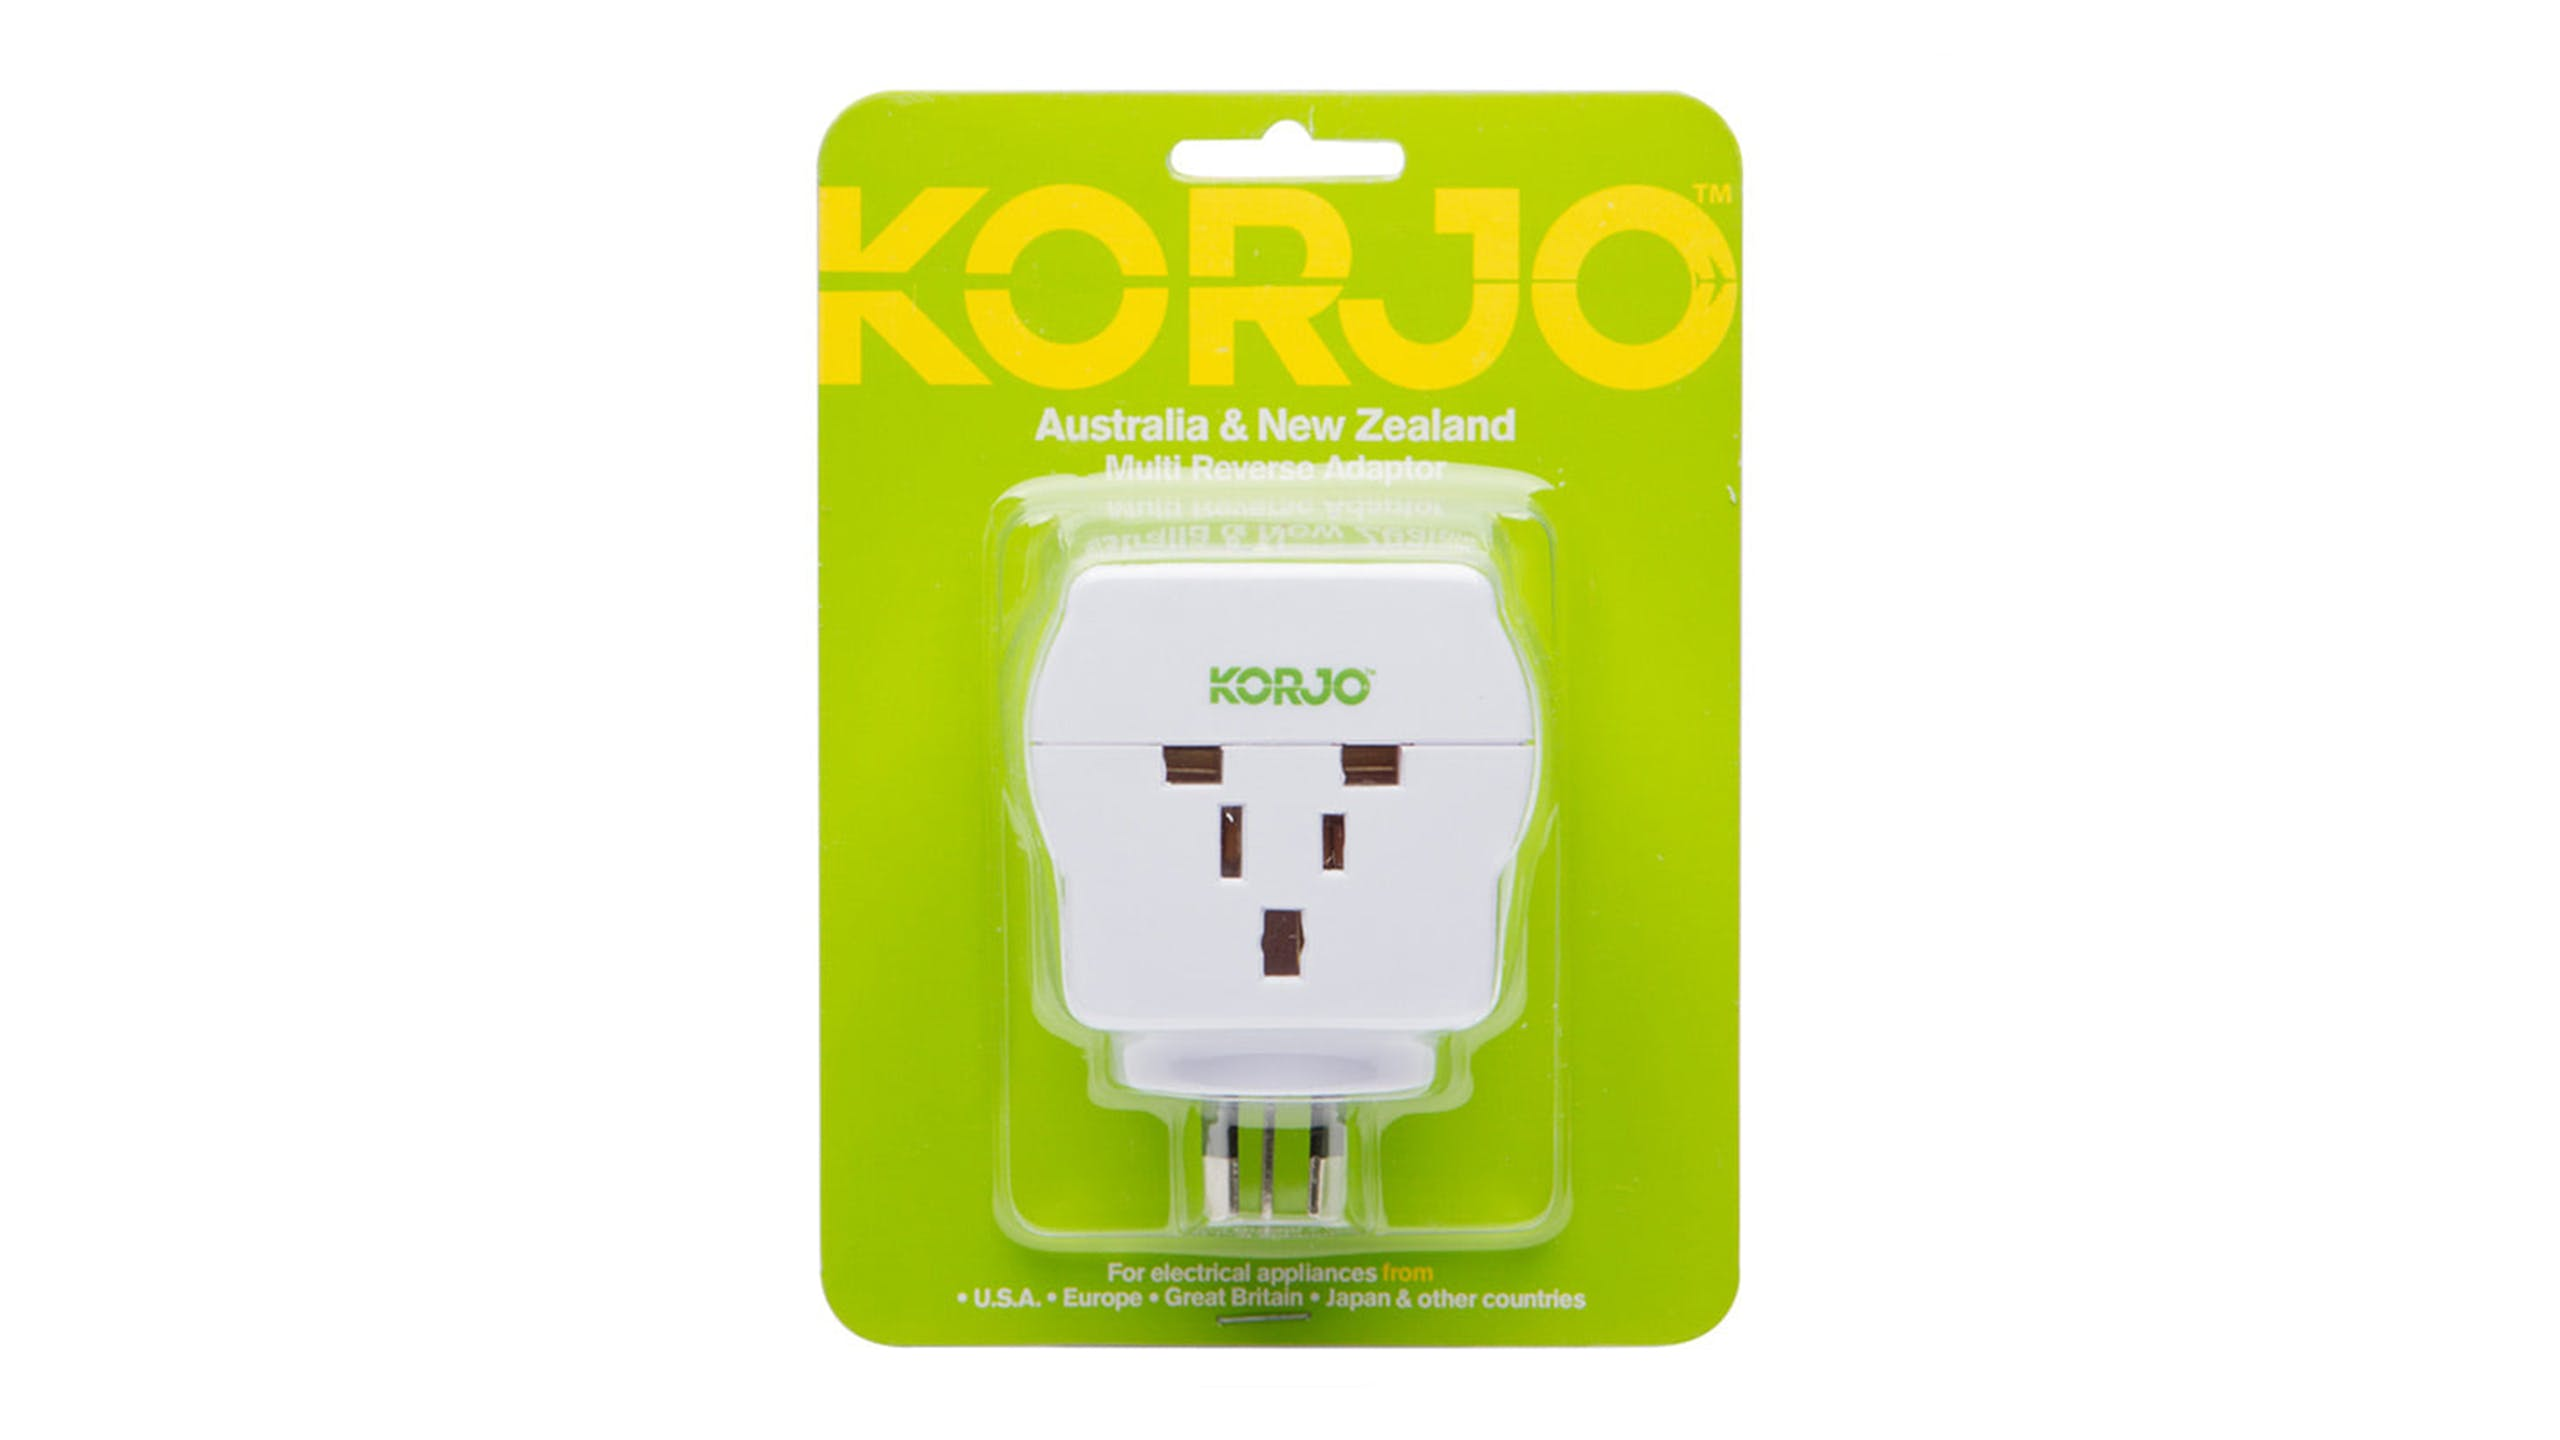 Korjo Multi-Reverse Adapter for New Zealand